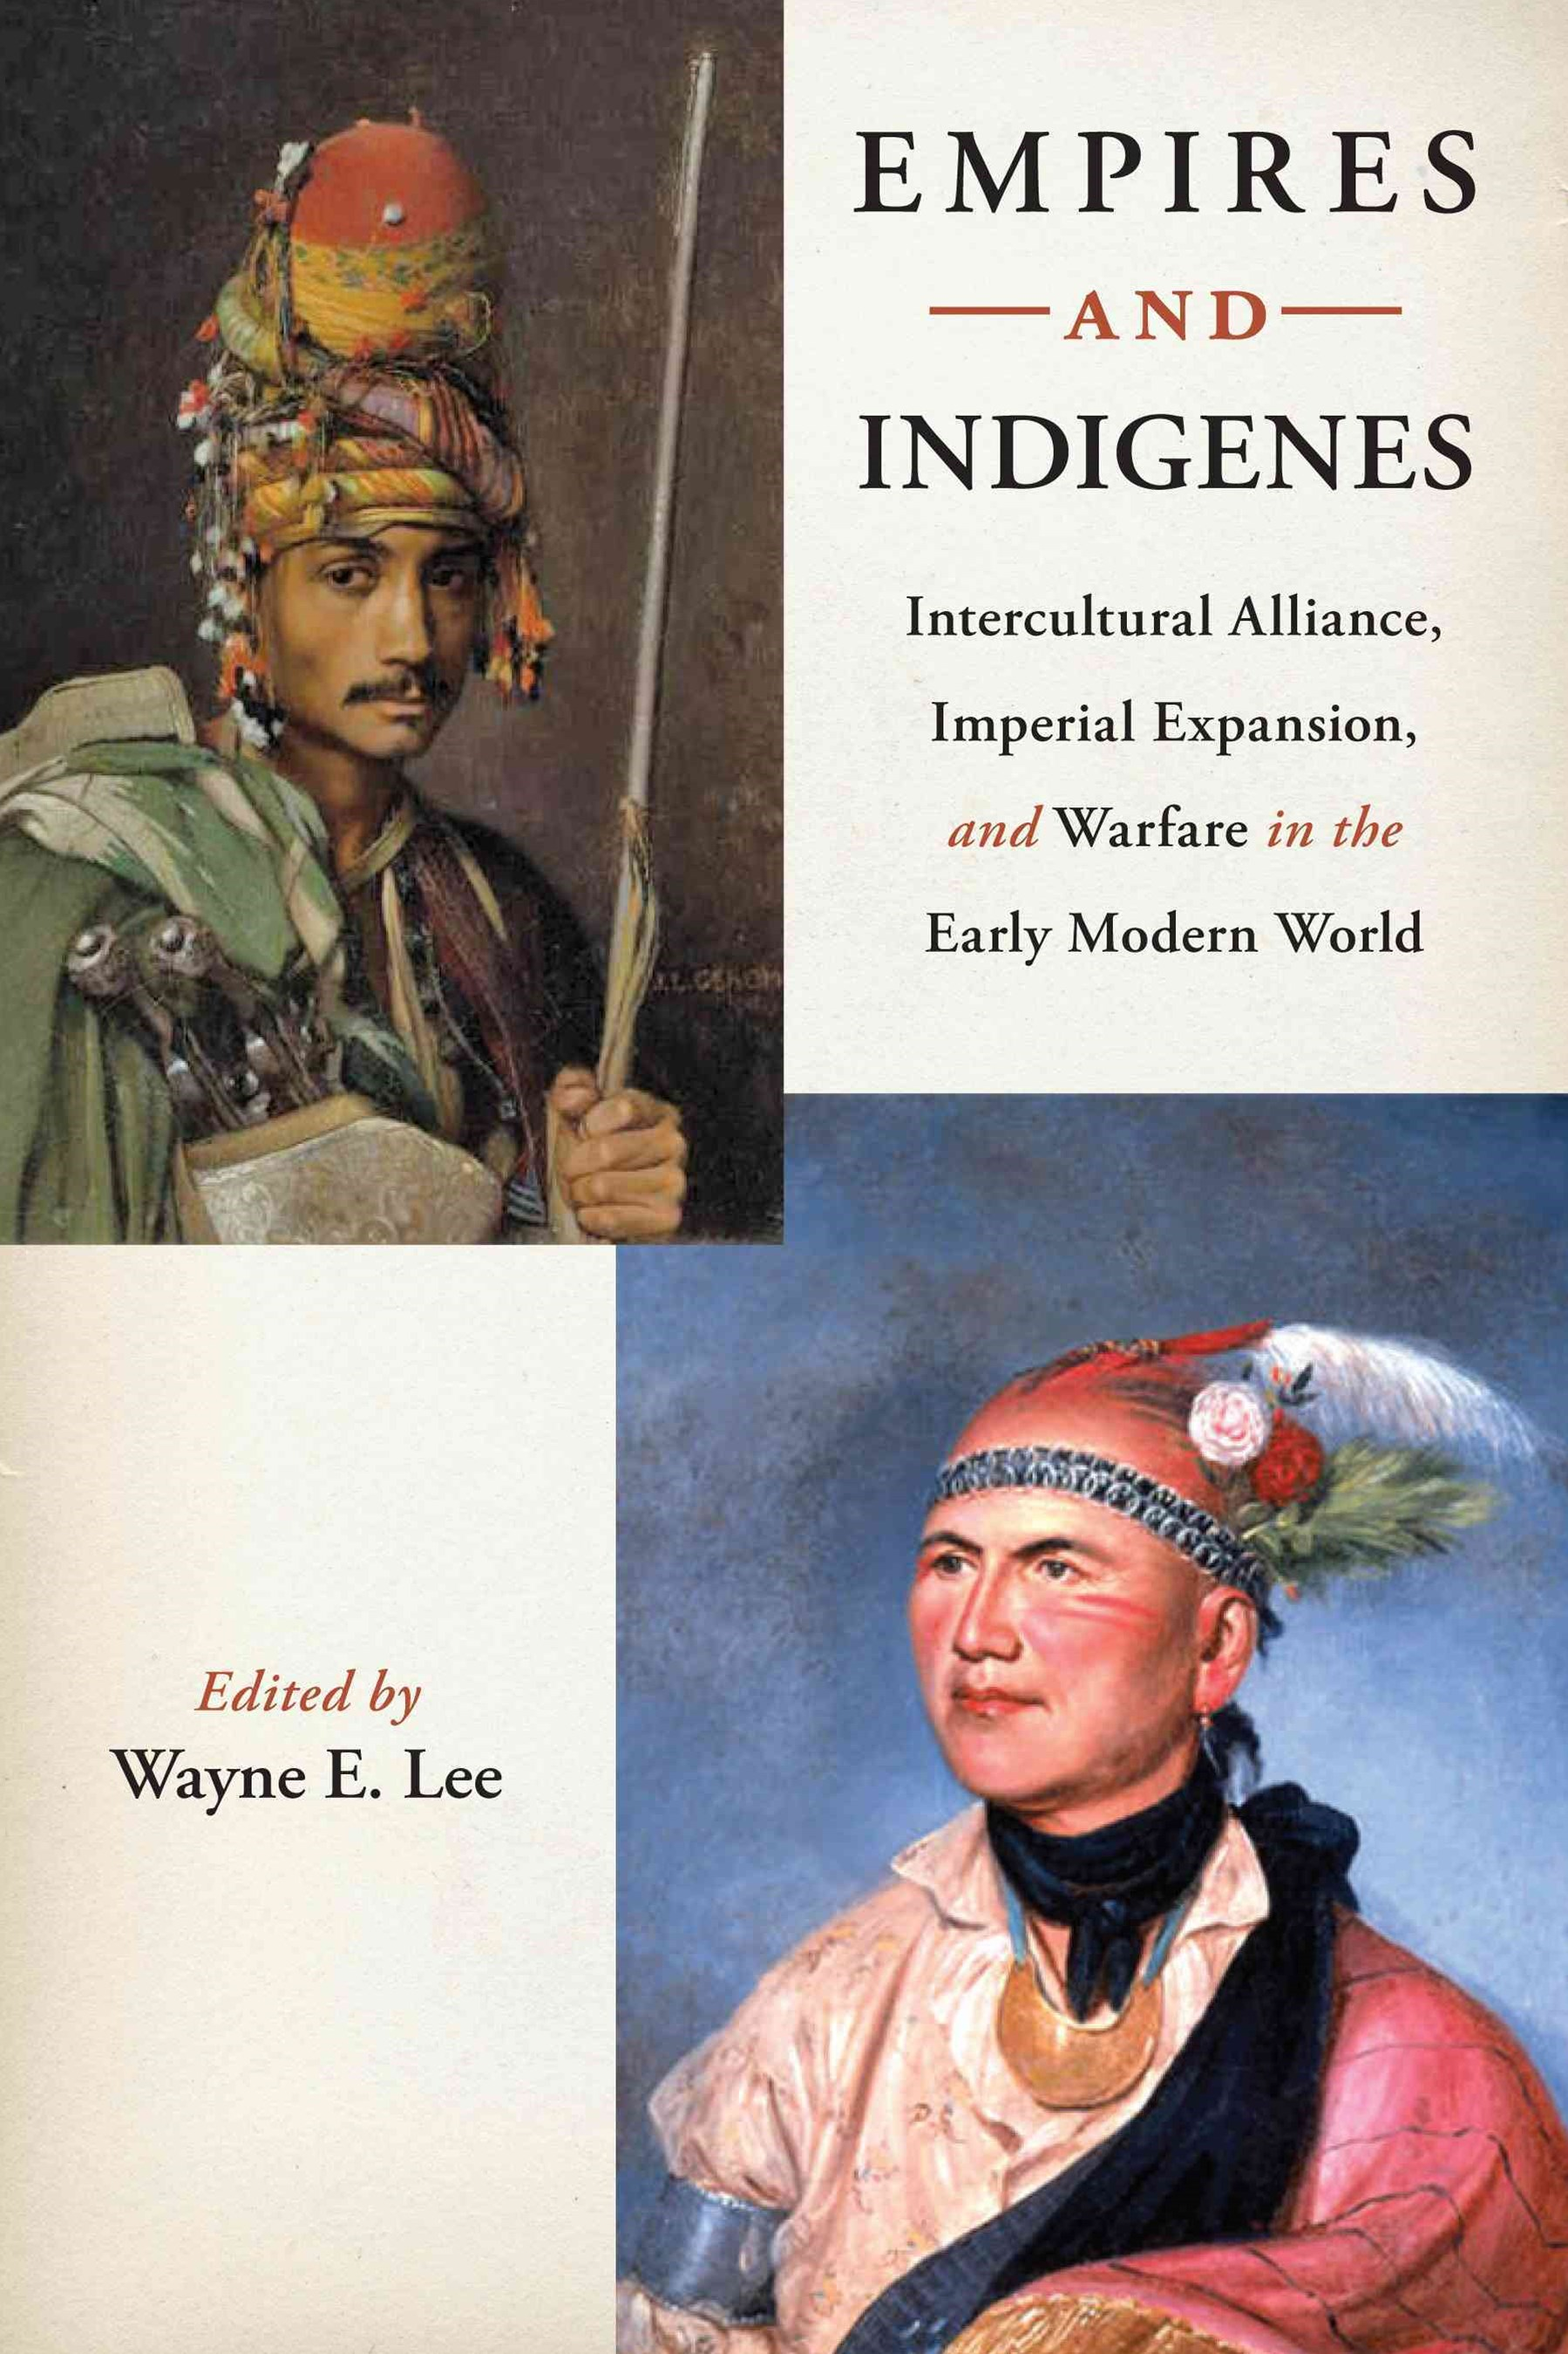 Empires and Indigenes